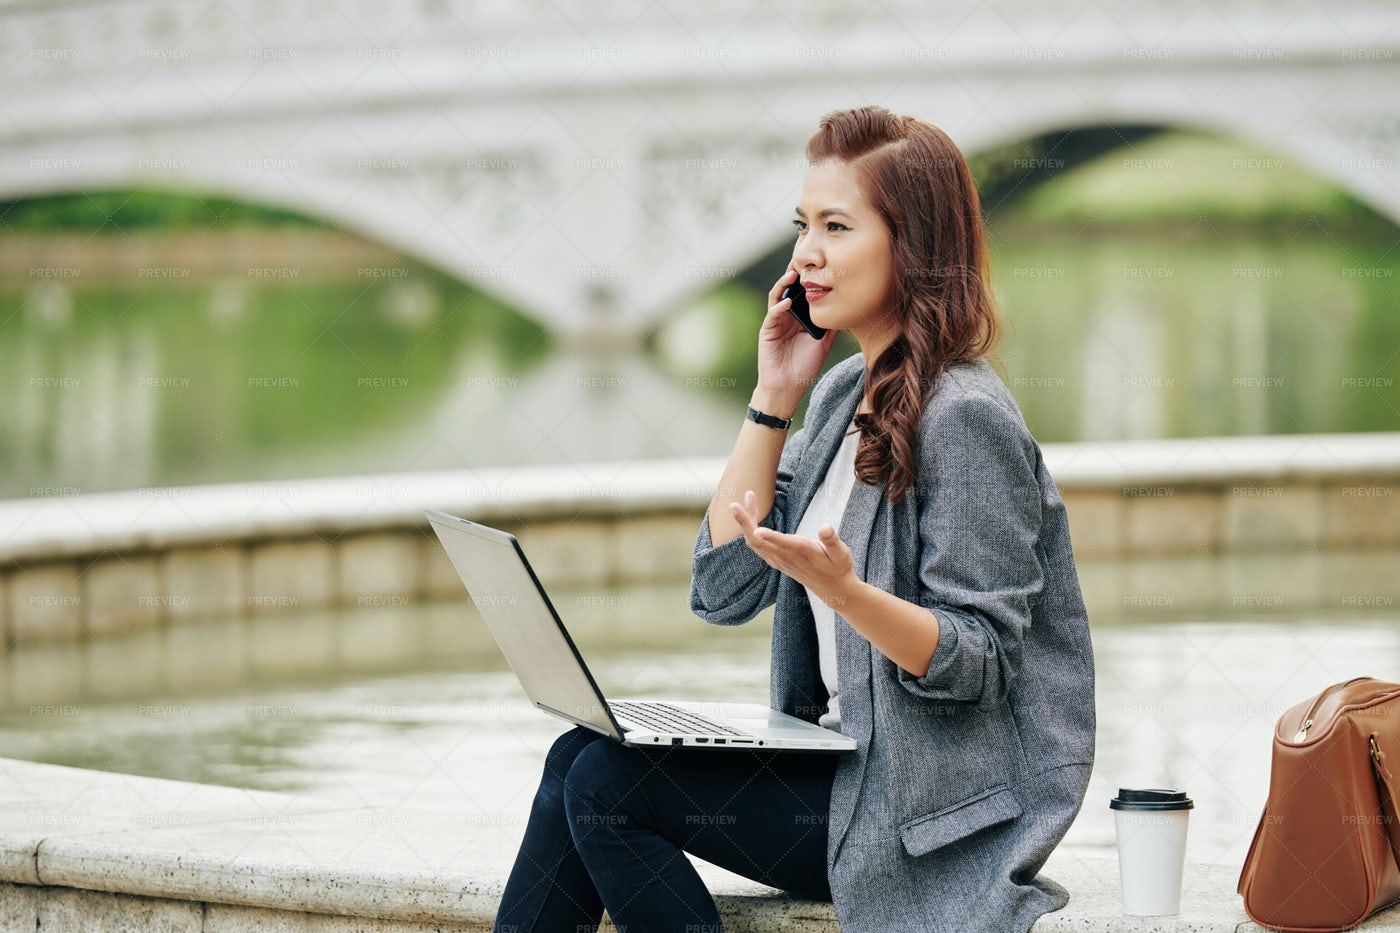 Frowning Businesswoman Calling On Phone: Stock Photos